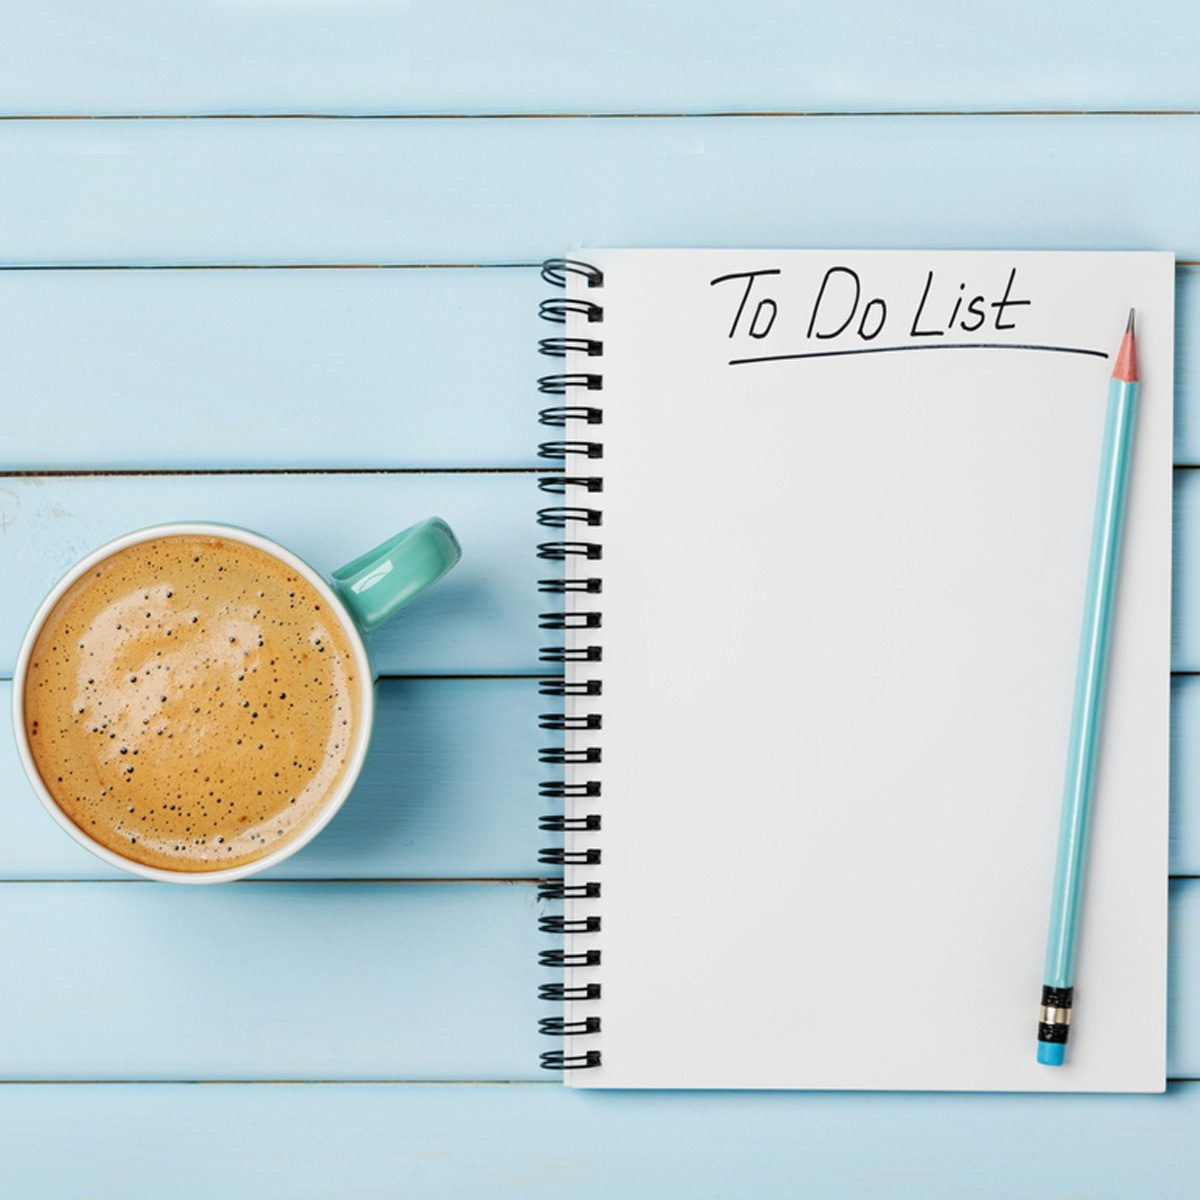 shutterstock_384639760 to do list with coffee late paper pencil notebook